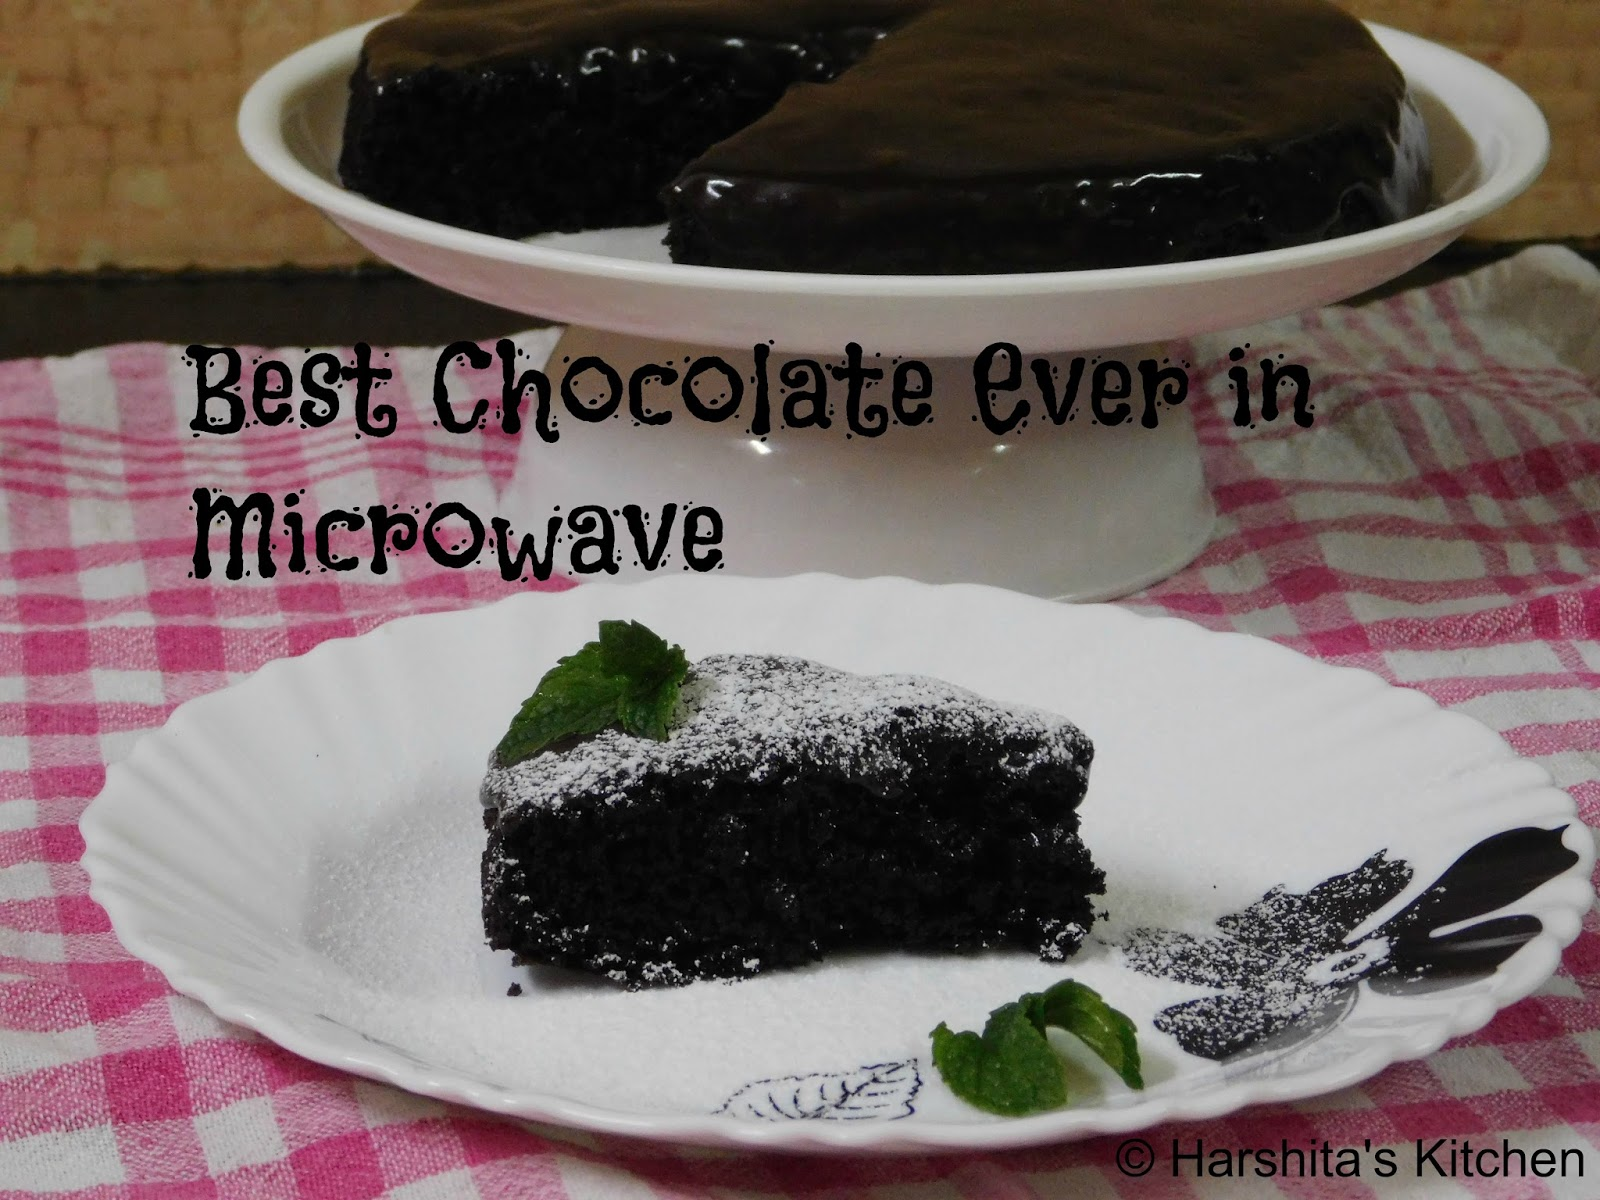 Harshita's Kitchen: Best Chocolate Cake Ever in Microwave ...